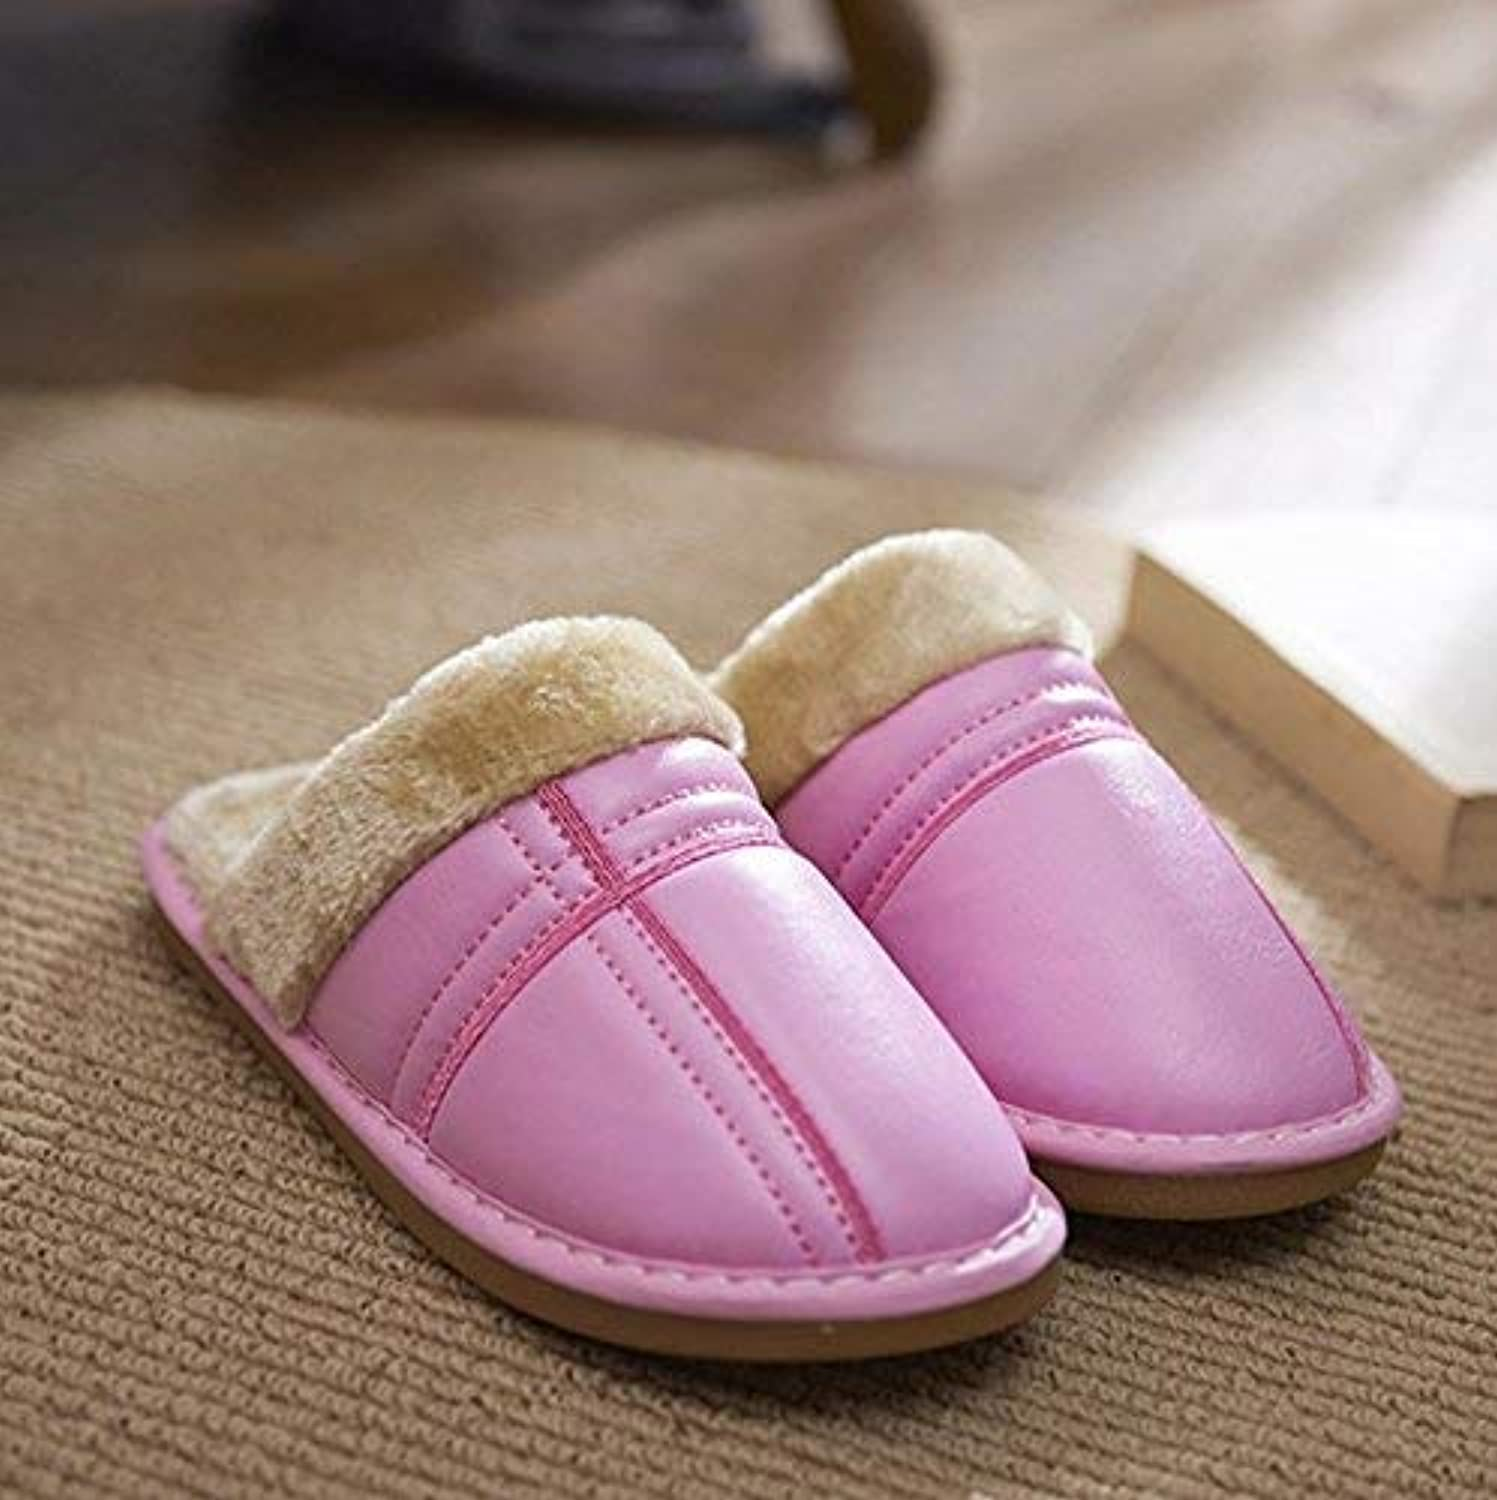 JaHGDU Ladies Thermal Slippers Casual Faux-Leather Slippers Pink Leather Keep Warm in Winter and Autumn Home and Leisure Indoor shoes